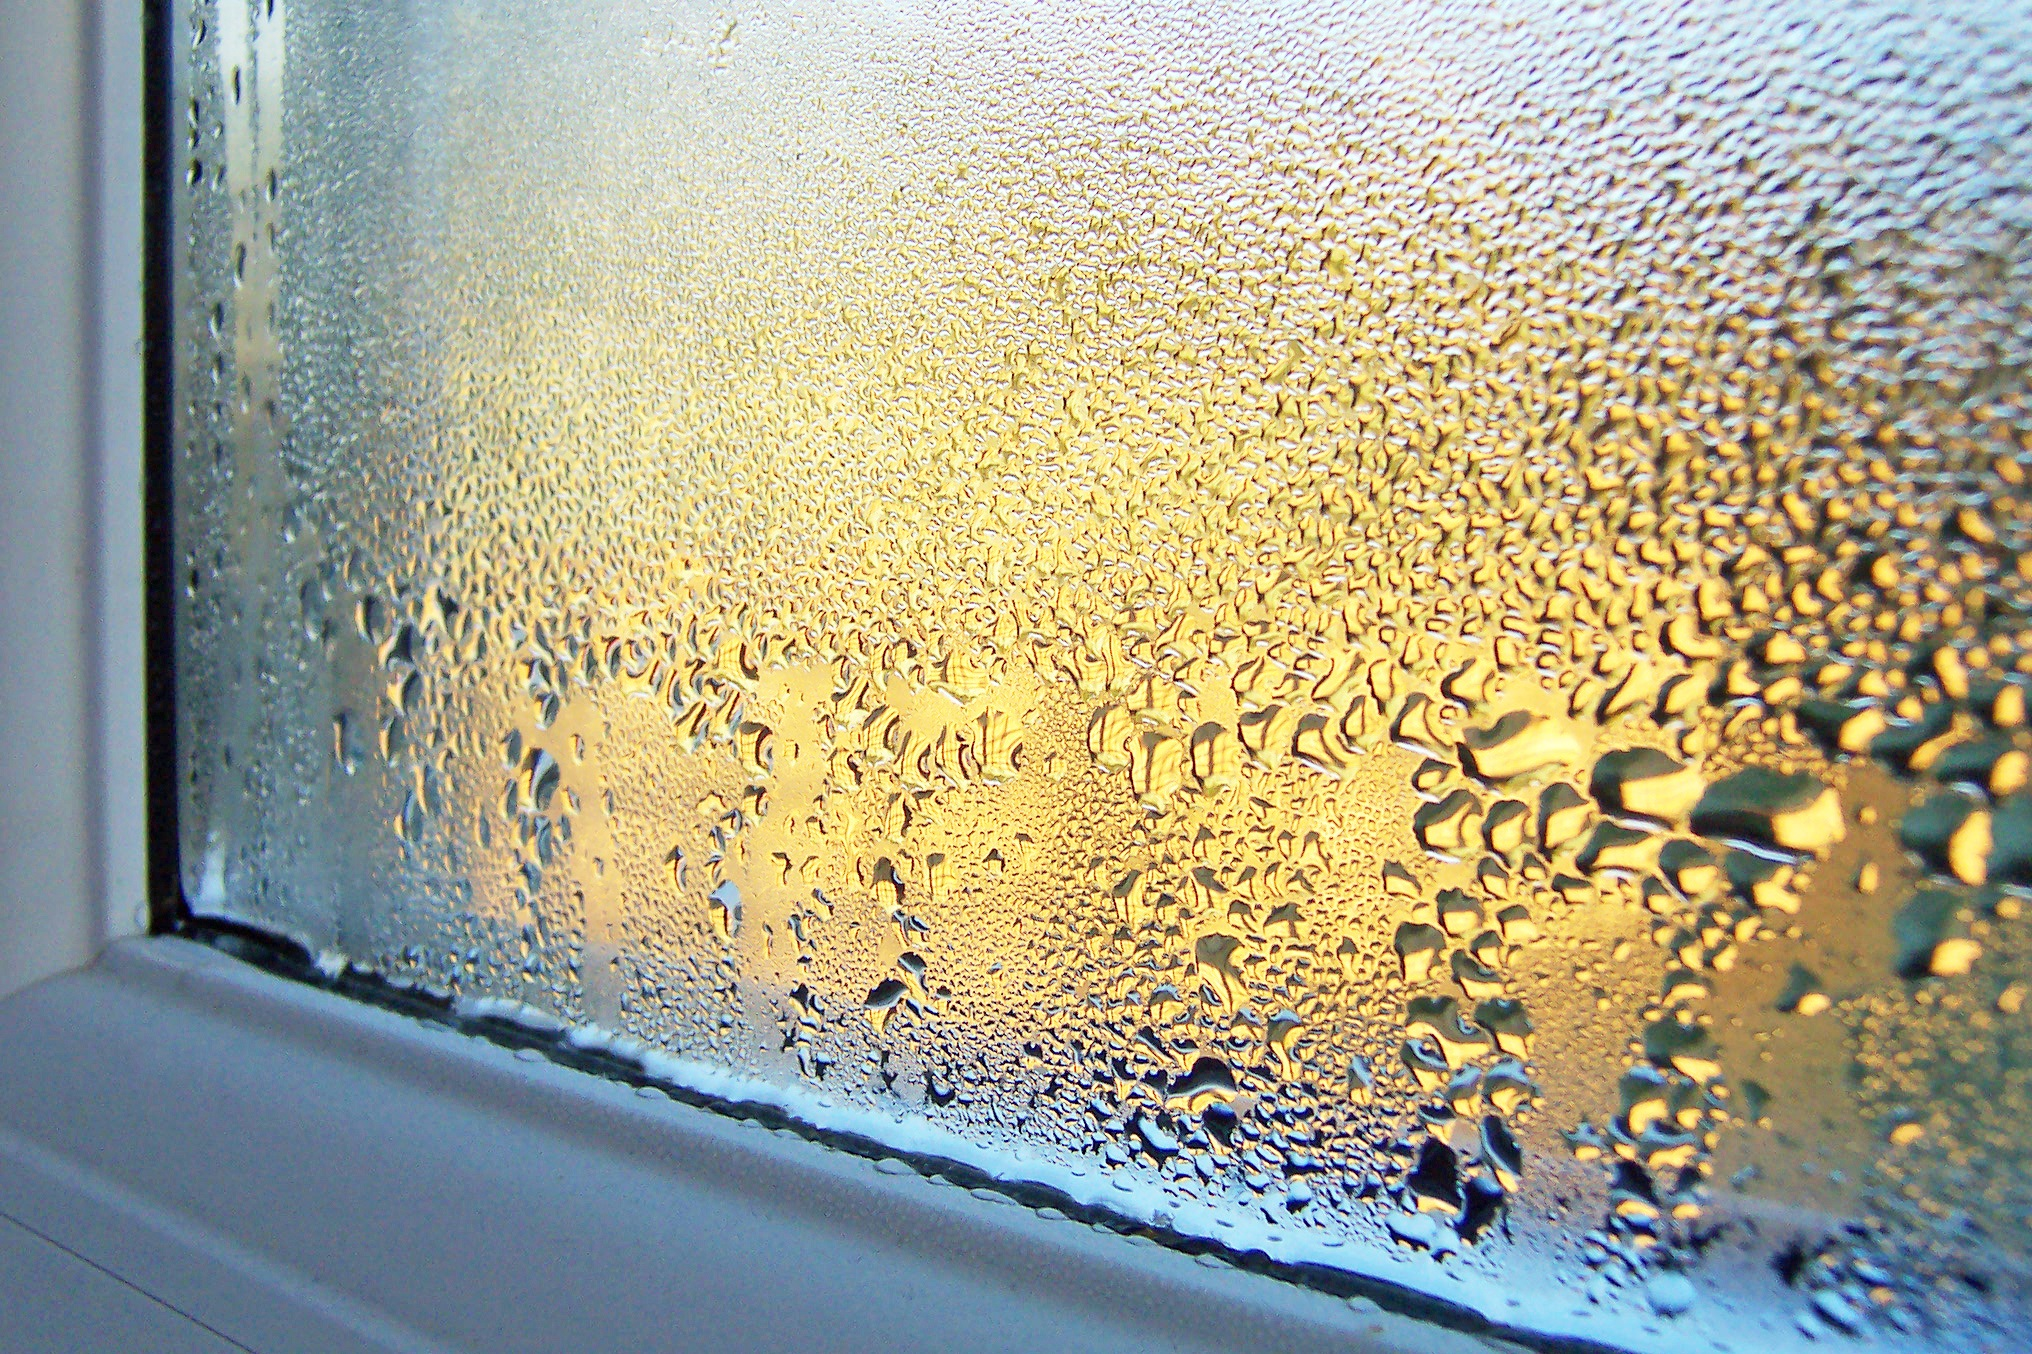 how to get rid of condensation on windows in winter